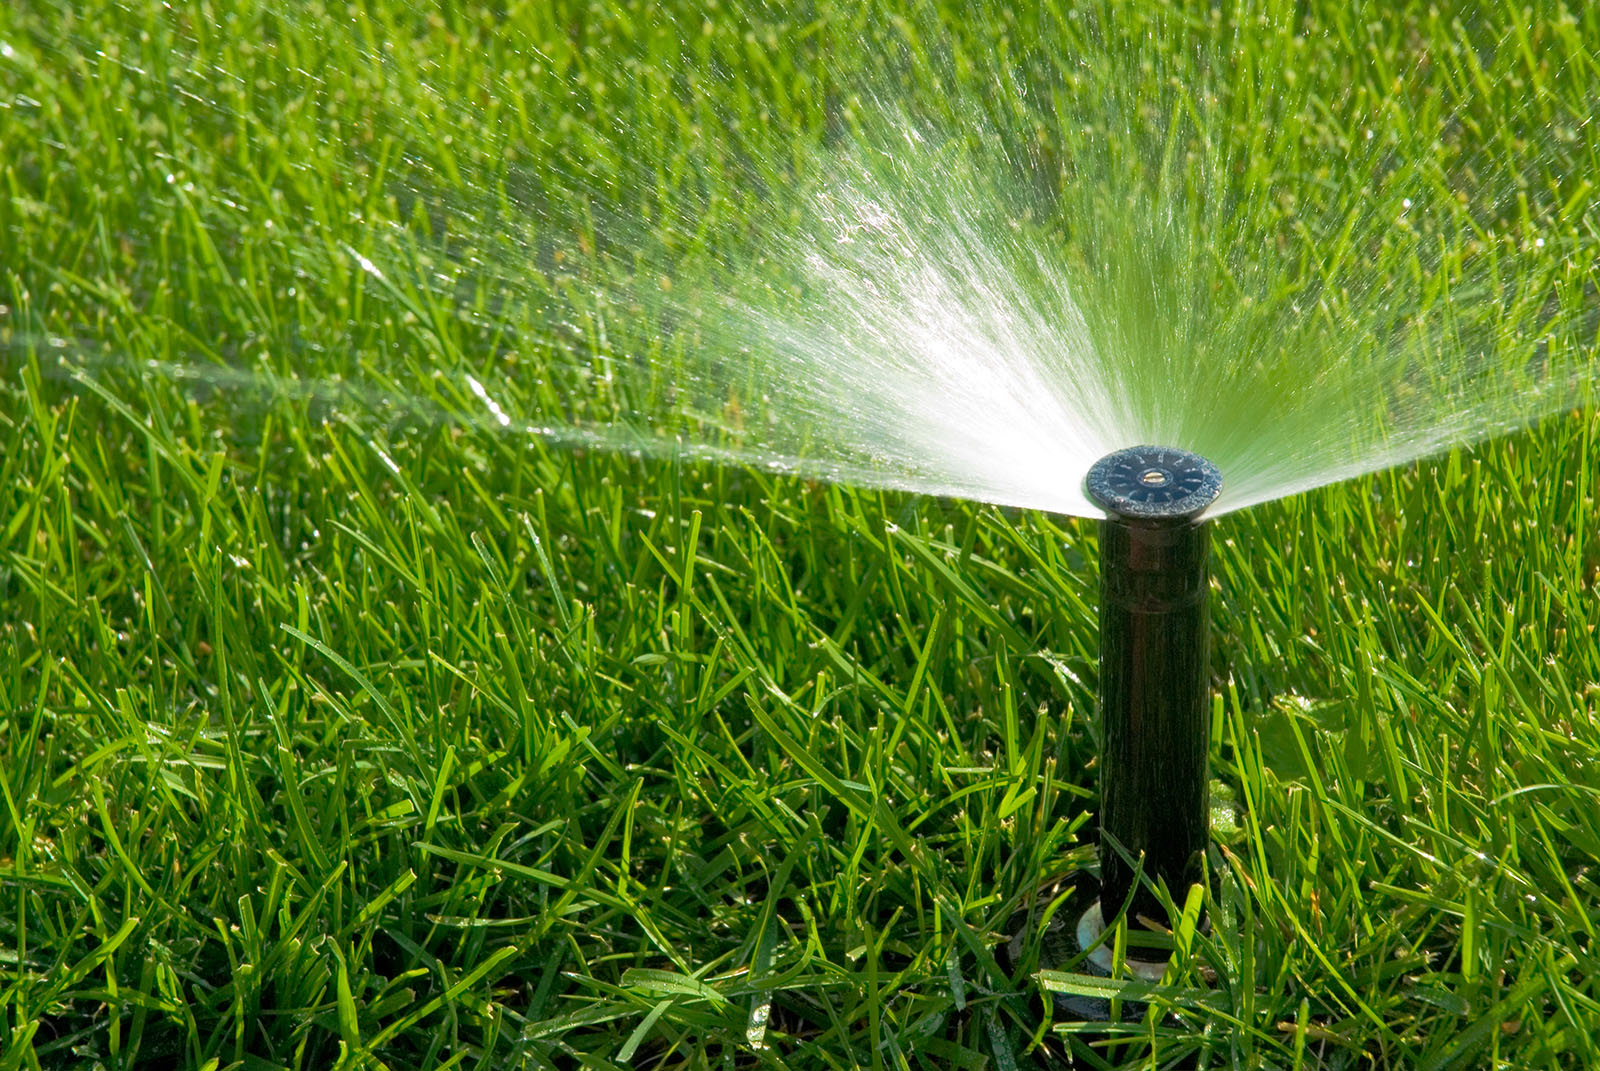 LAWN CARE AND PLANT MAINTENANCE